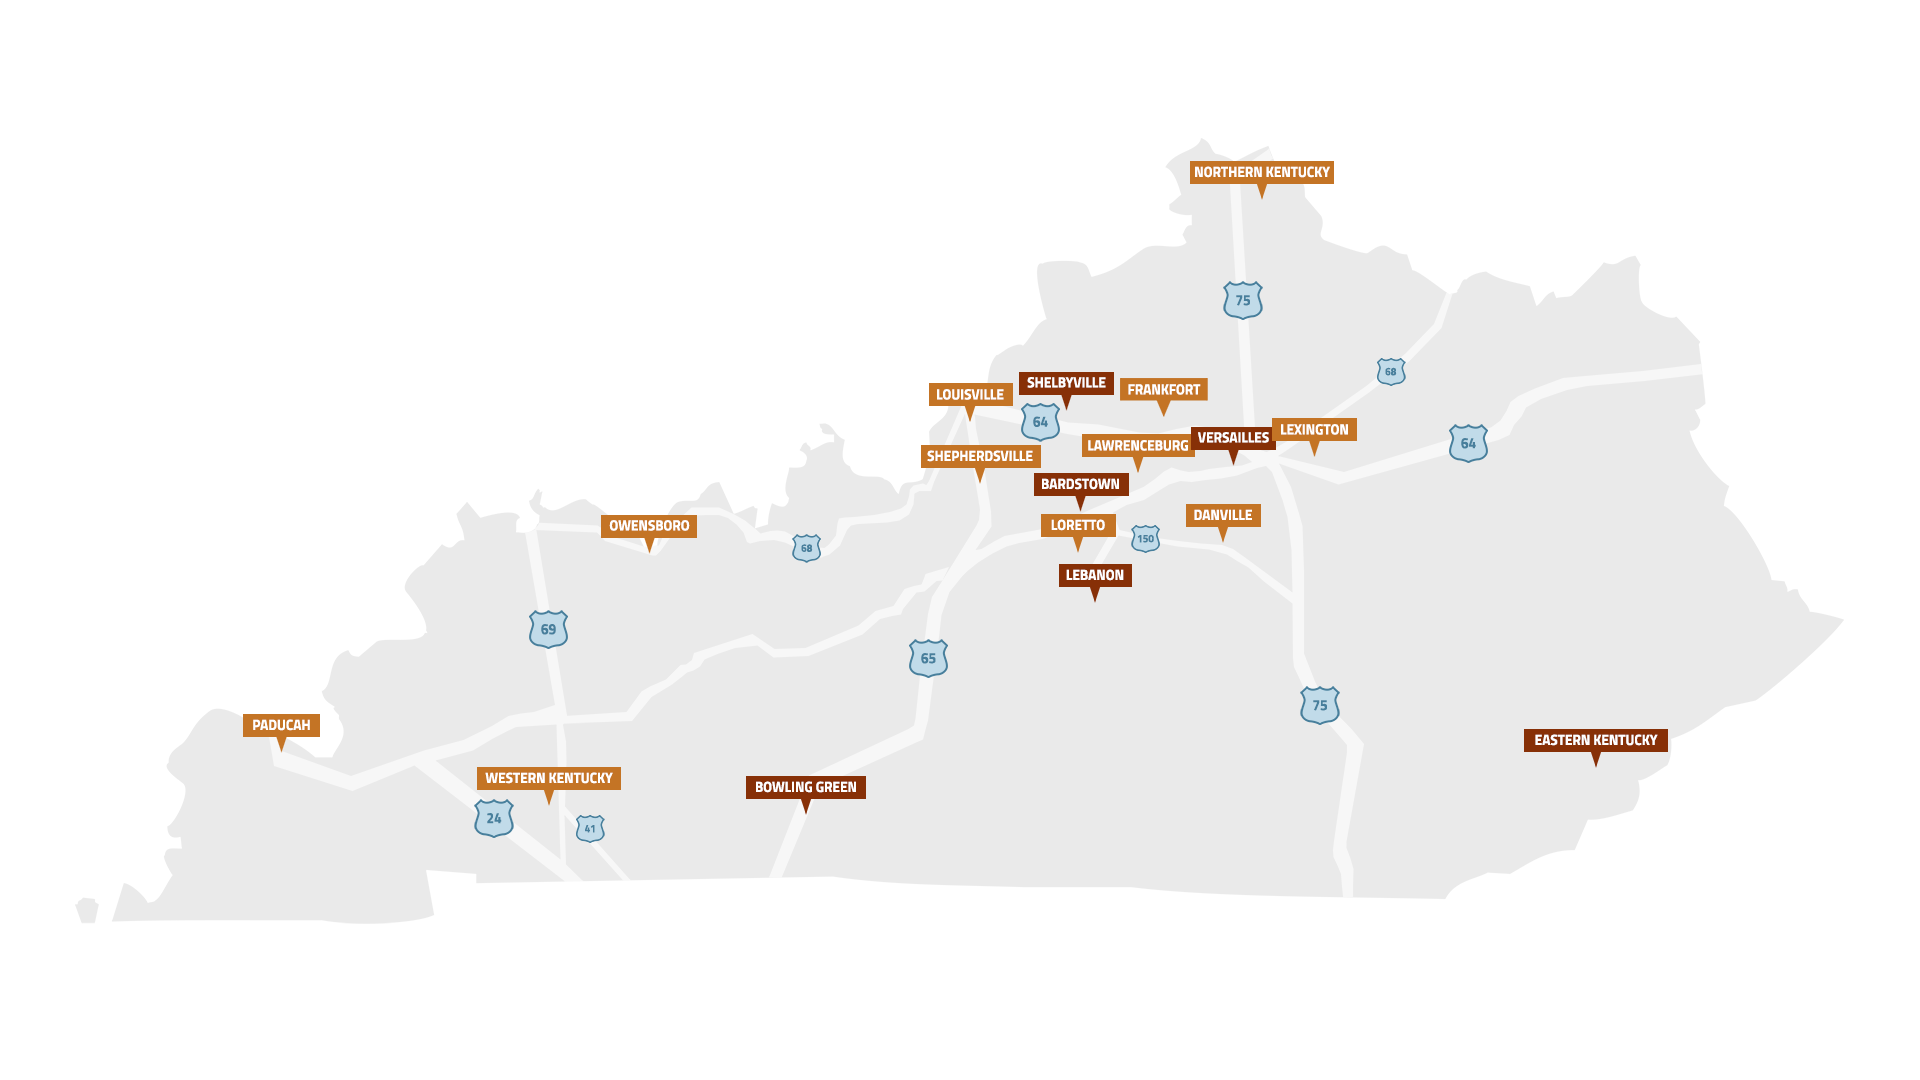 check out the many different bourbon experiences offered in each region of bourbon county